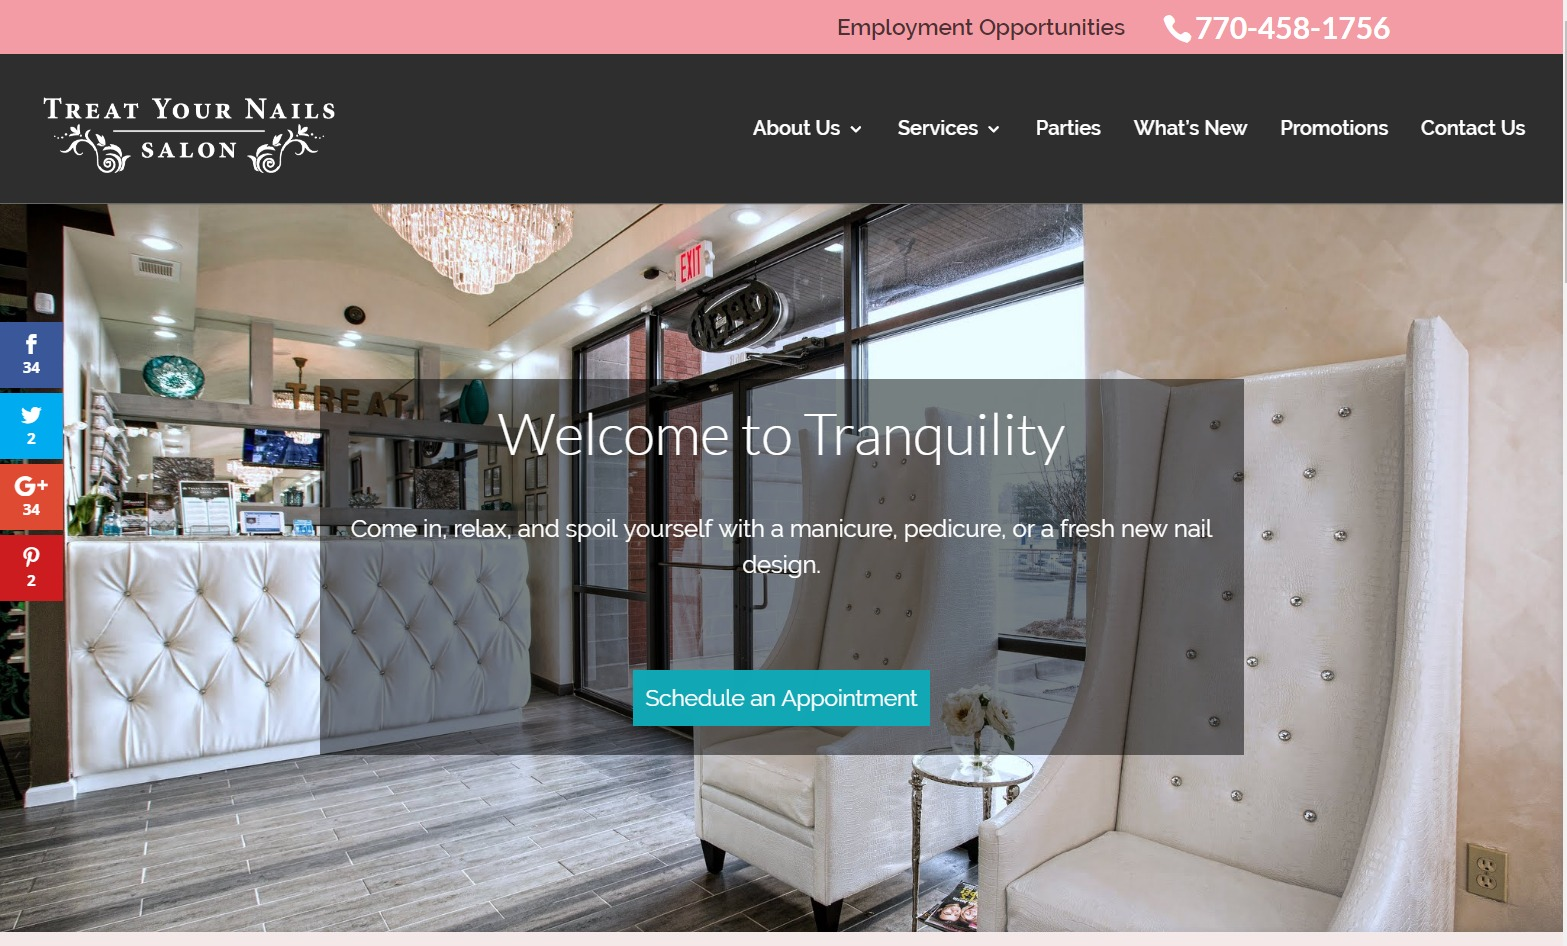 Treat Your Nails (Doraville, GA) Web Design